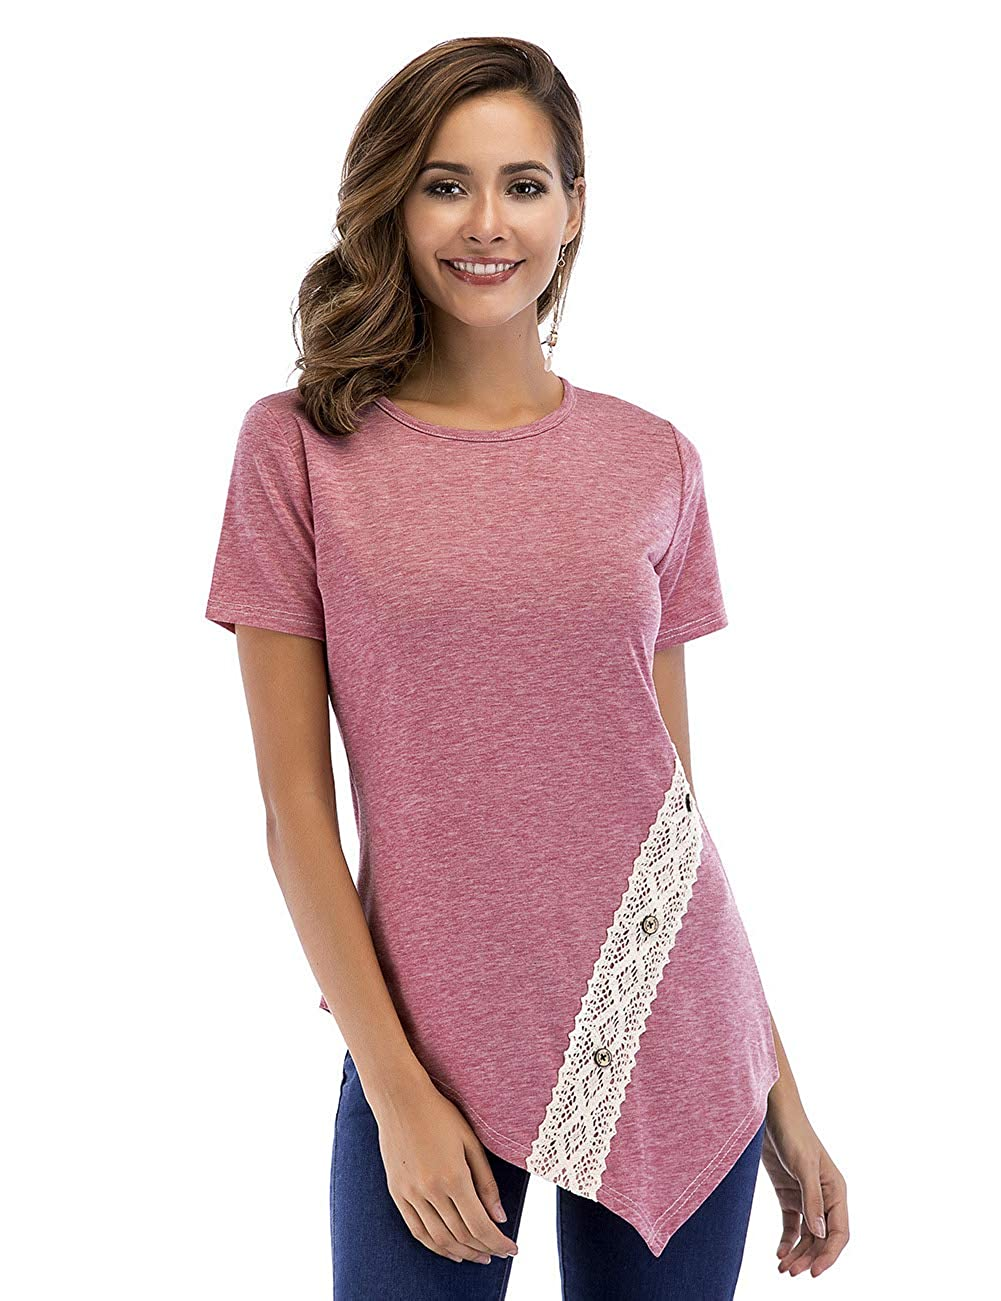 Pink YUMDO Women's Casual Short Sleeve Side Button T Shirt Blouse Tunics